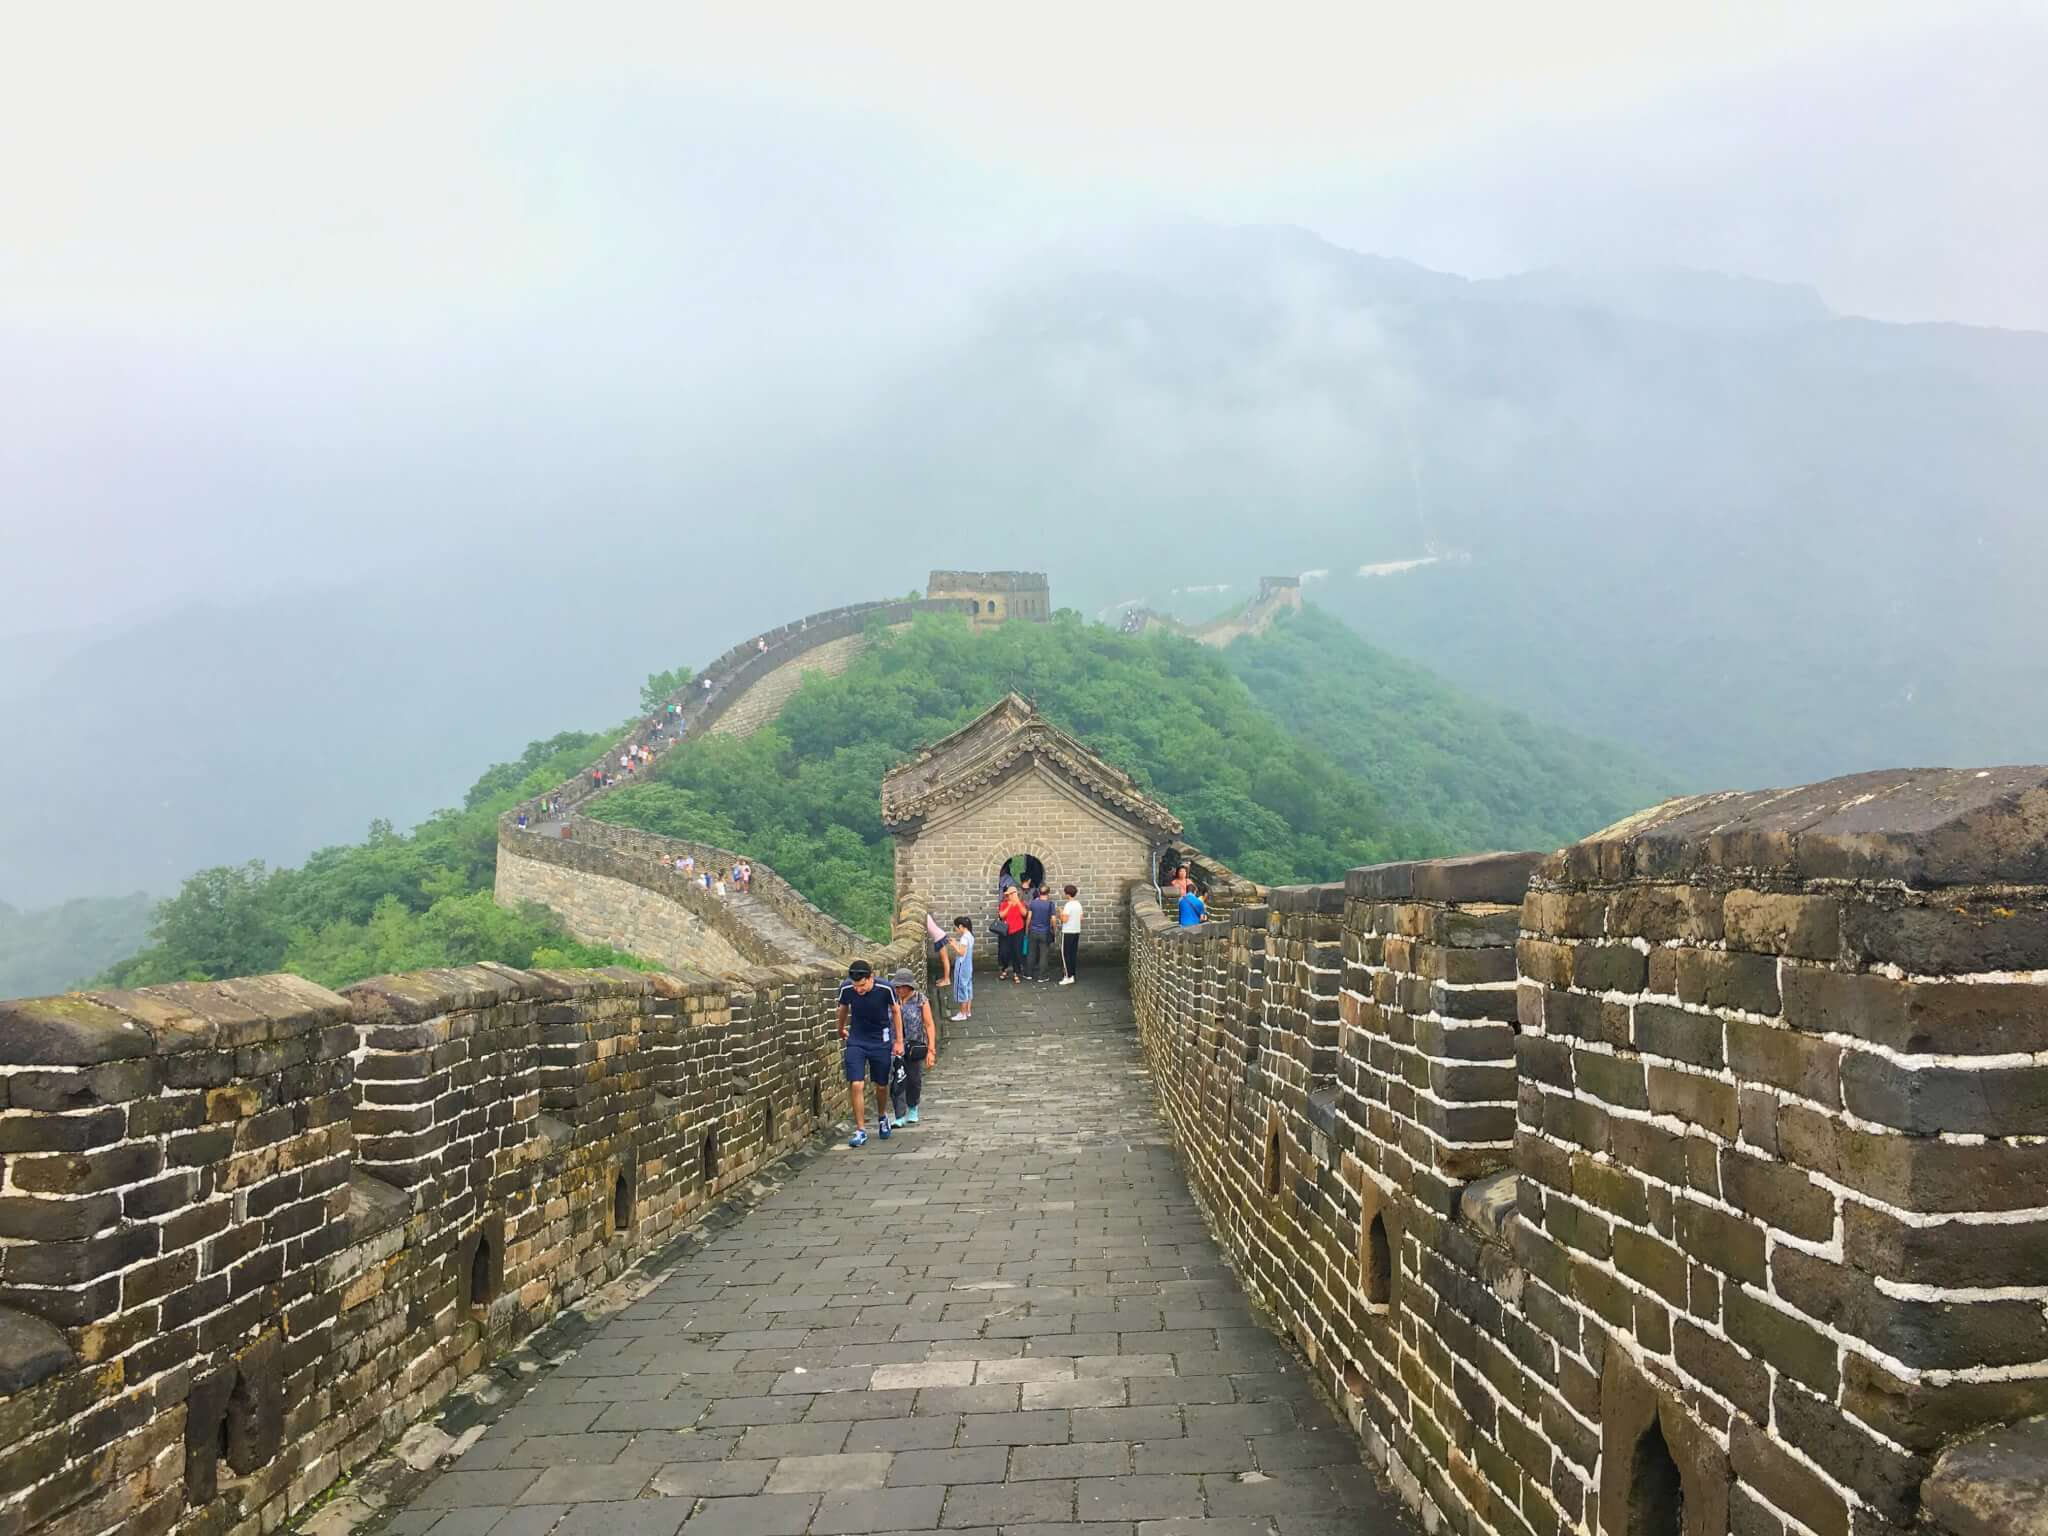 Thinking of going to China? Here is some information for you!